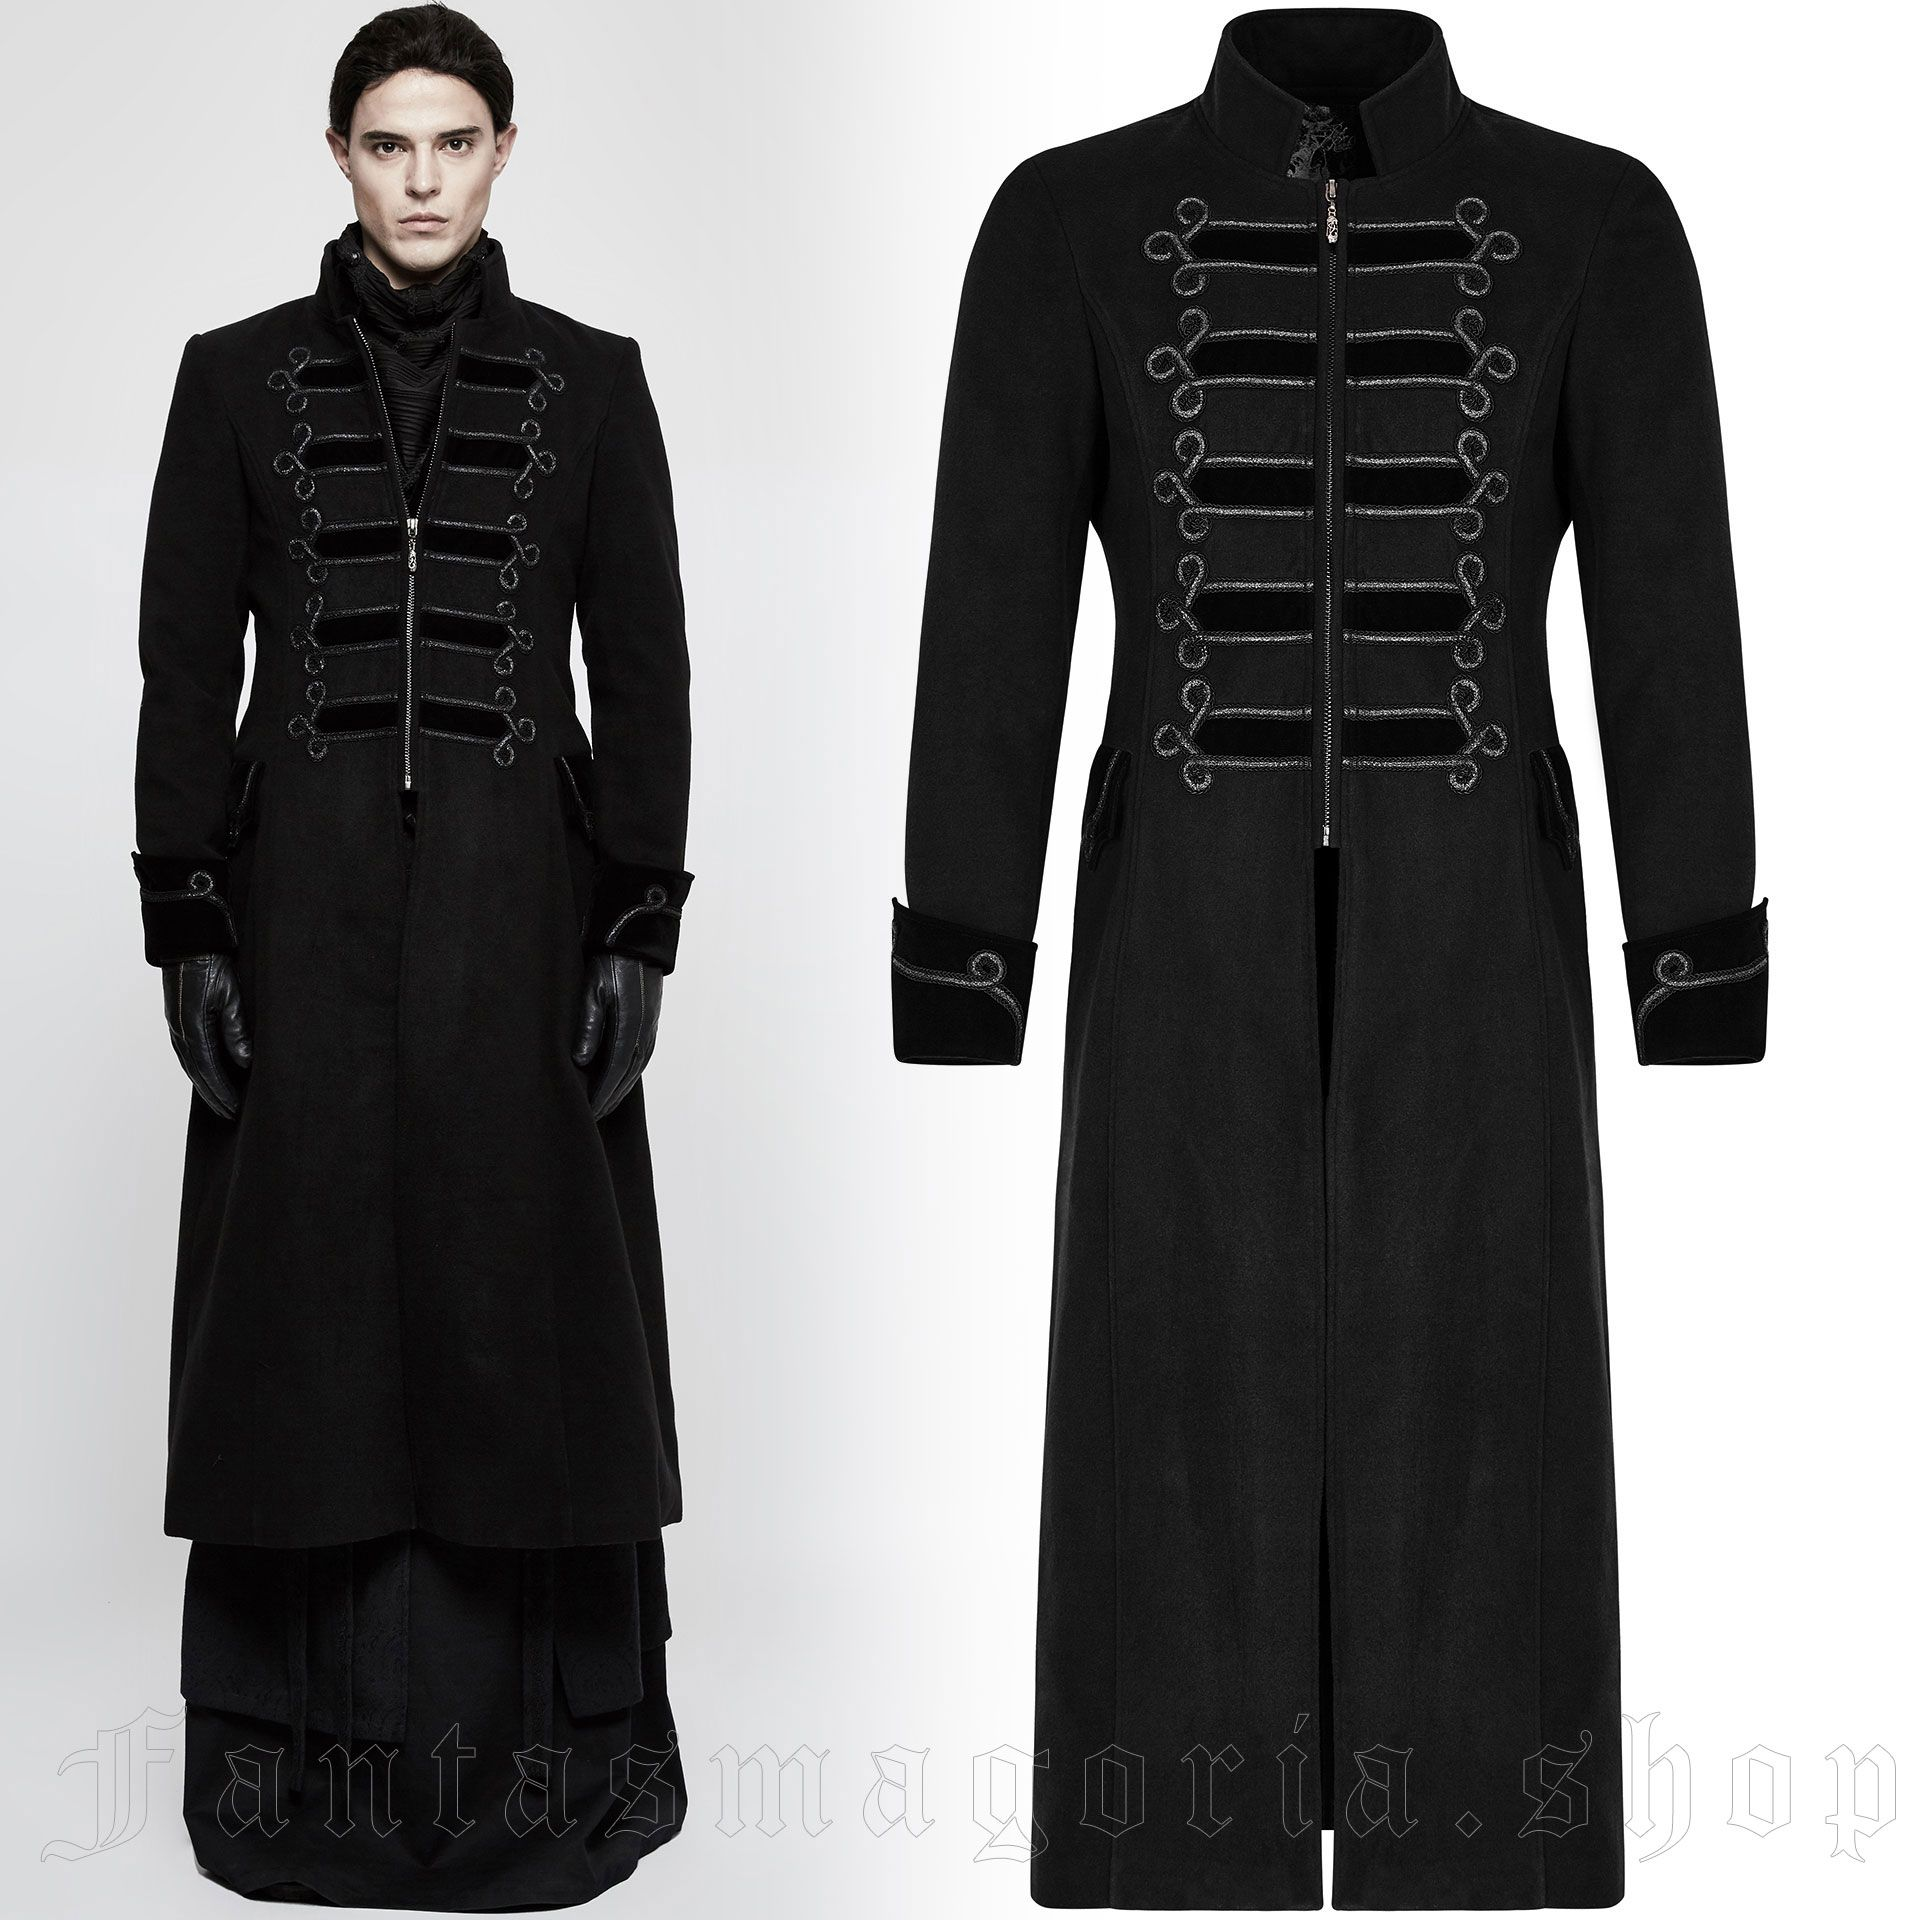 men's Phantom Coat by PUNK RAVE brand, code: Y-798